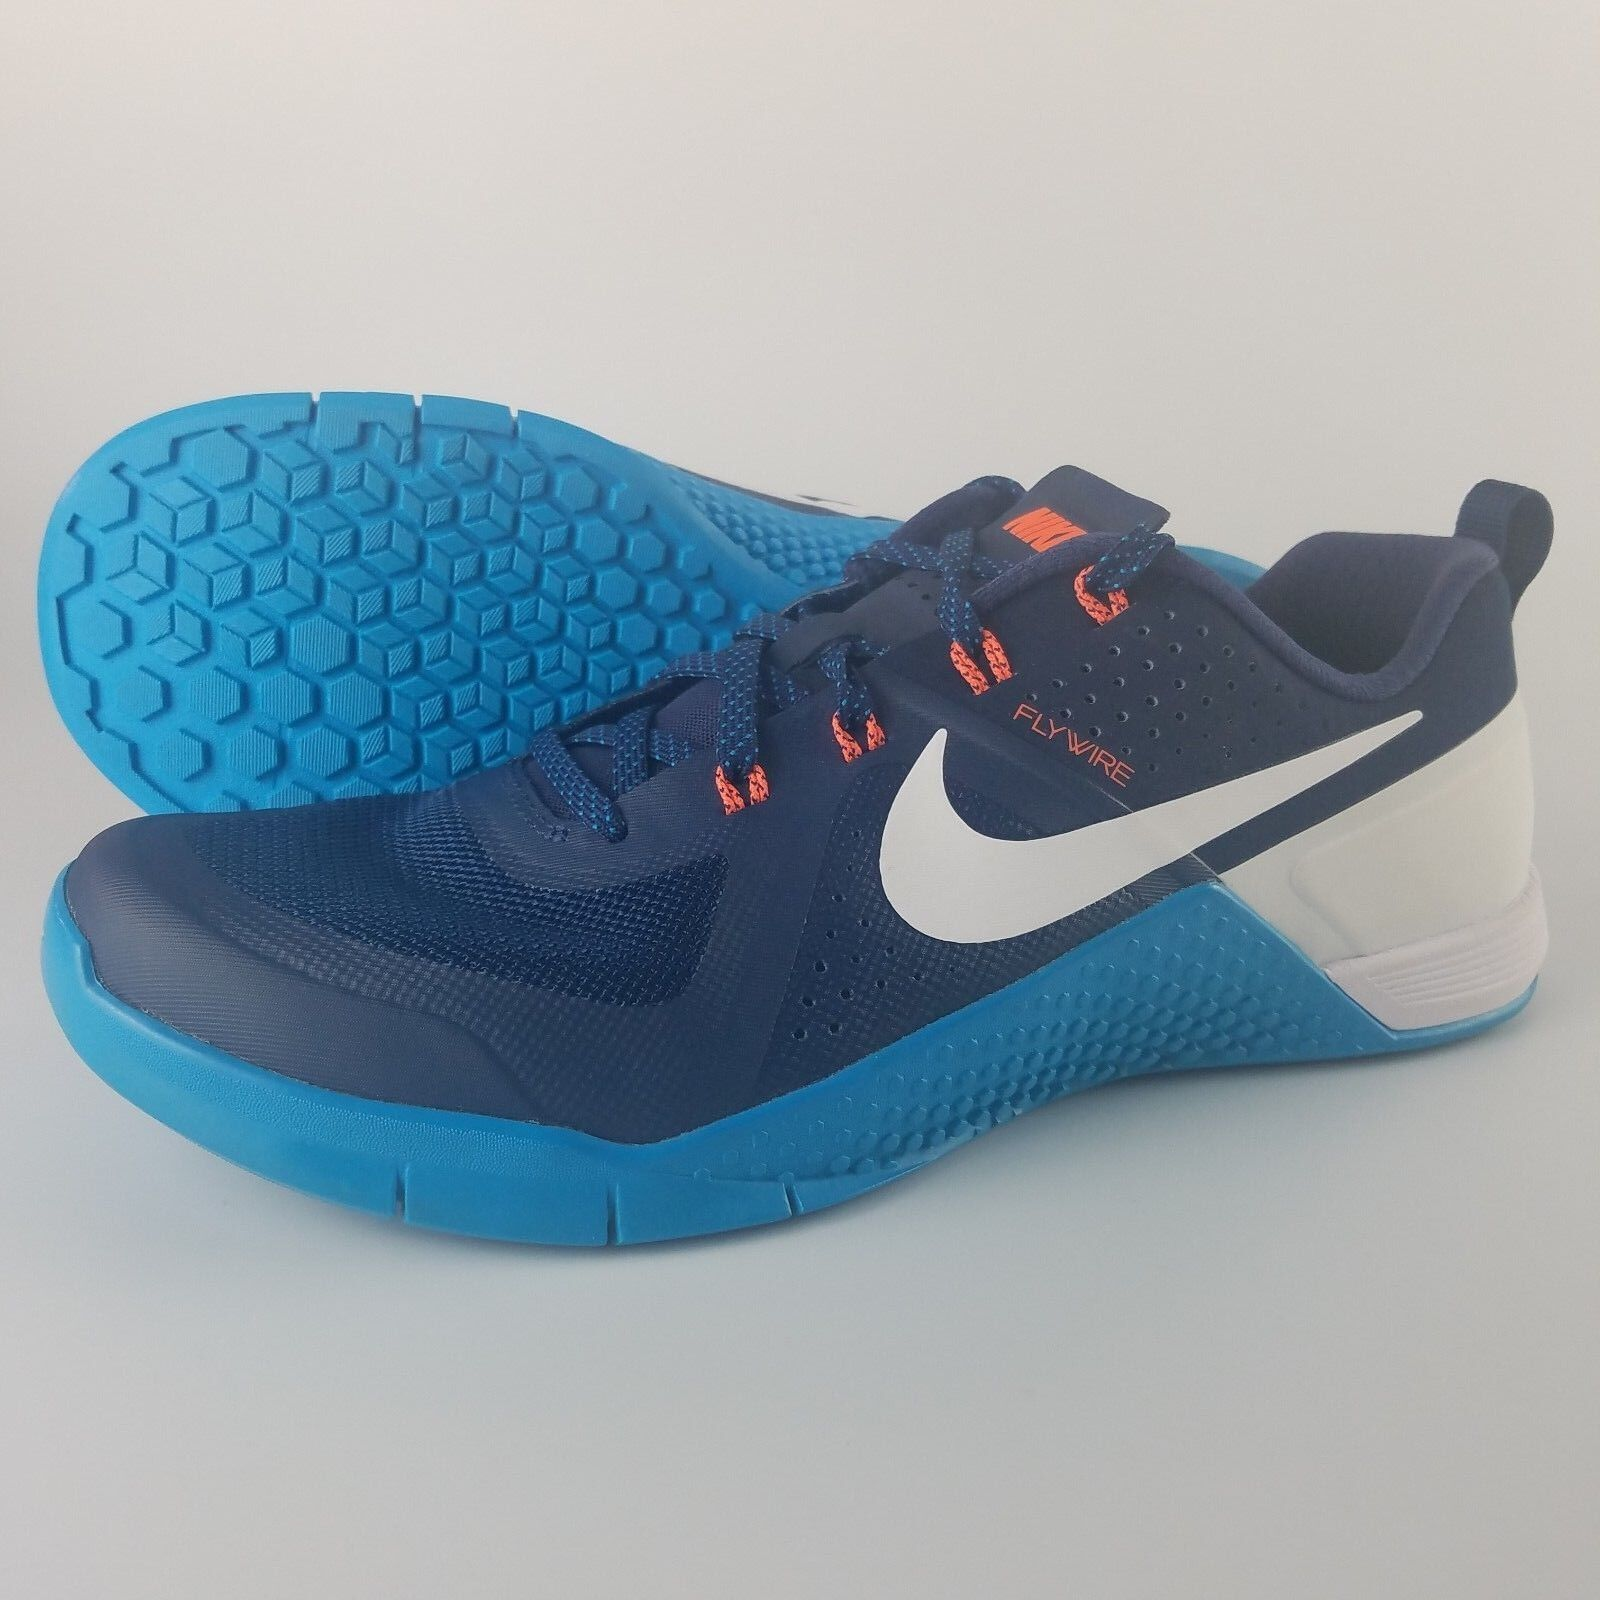 Nike Metcon 1 Running shoes Men's Size 8.5 Navy bluee Lagoon White 704688-404